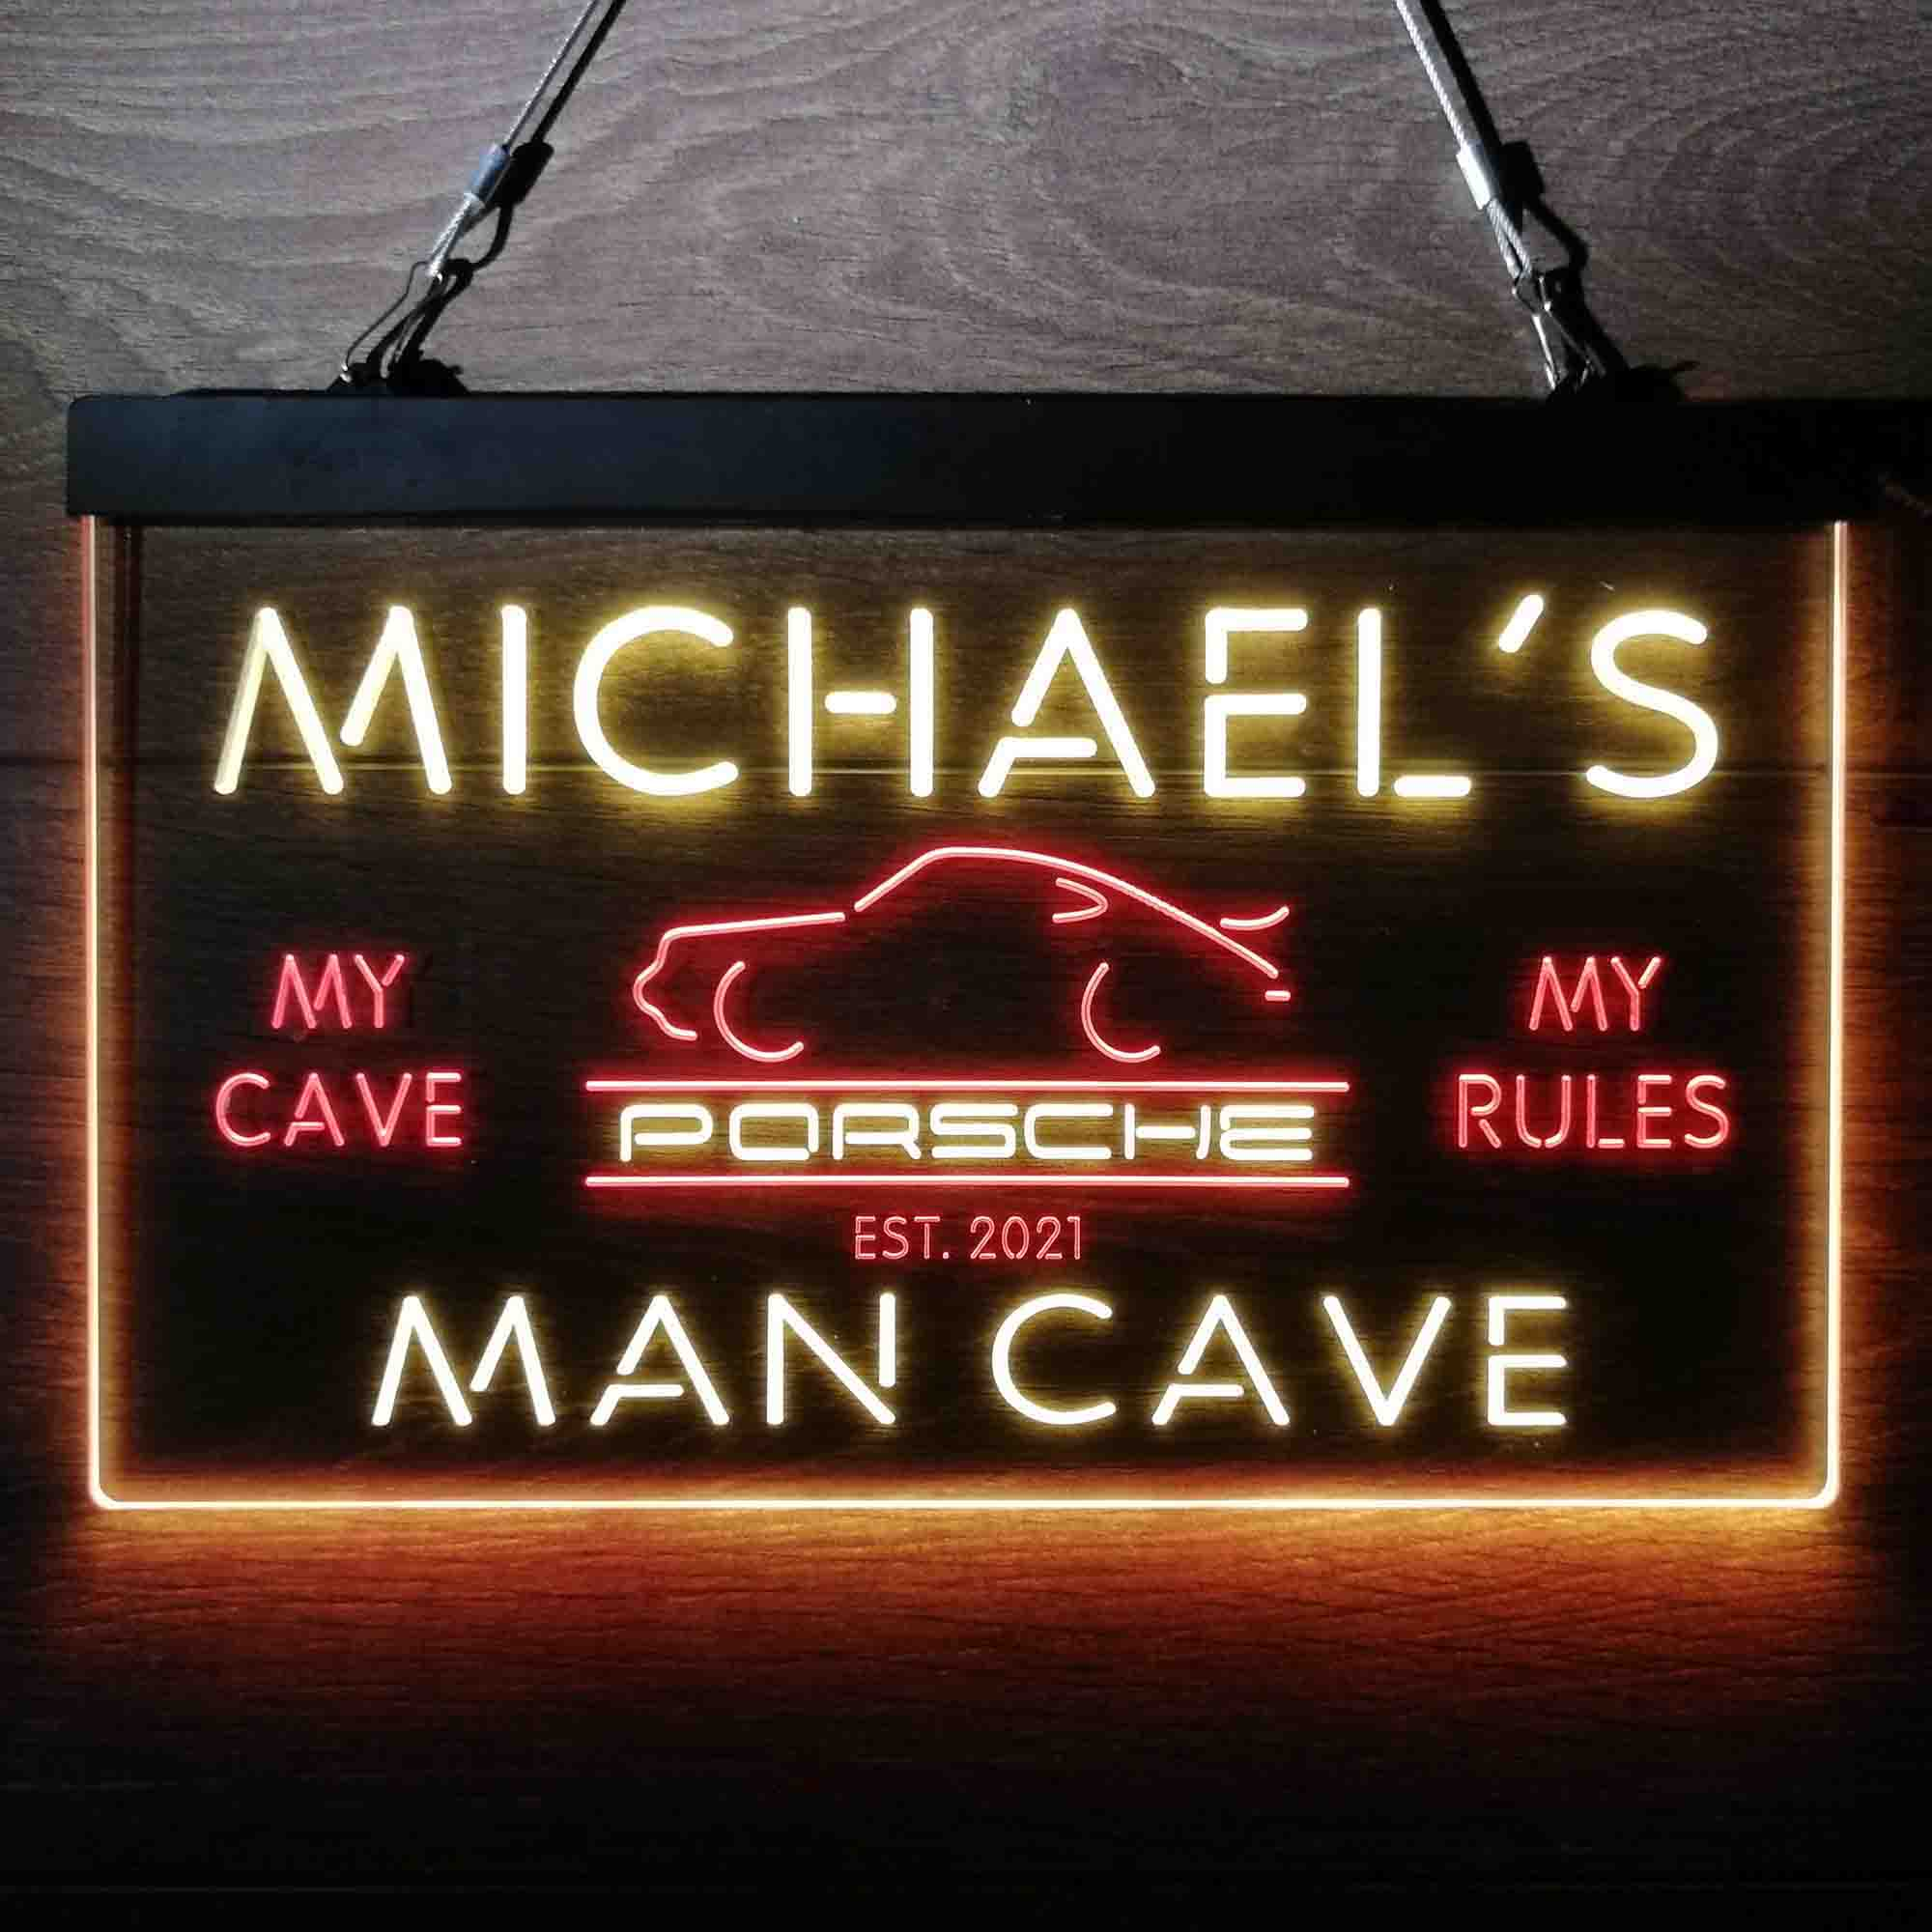 Custom Name Porsche Car Neon-Like LED Sign